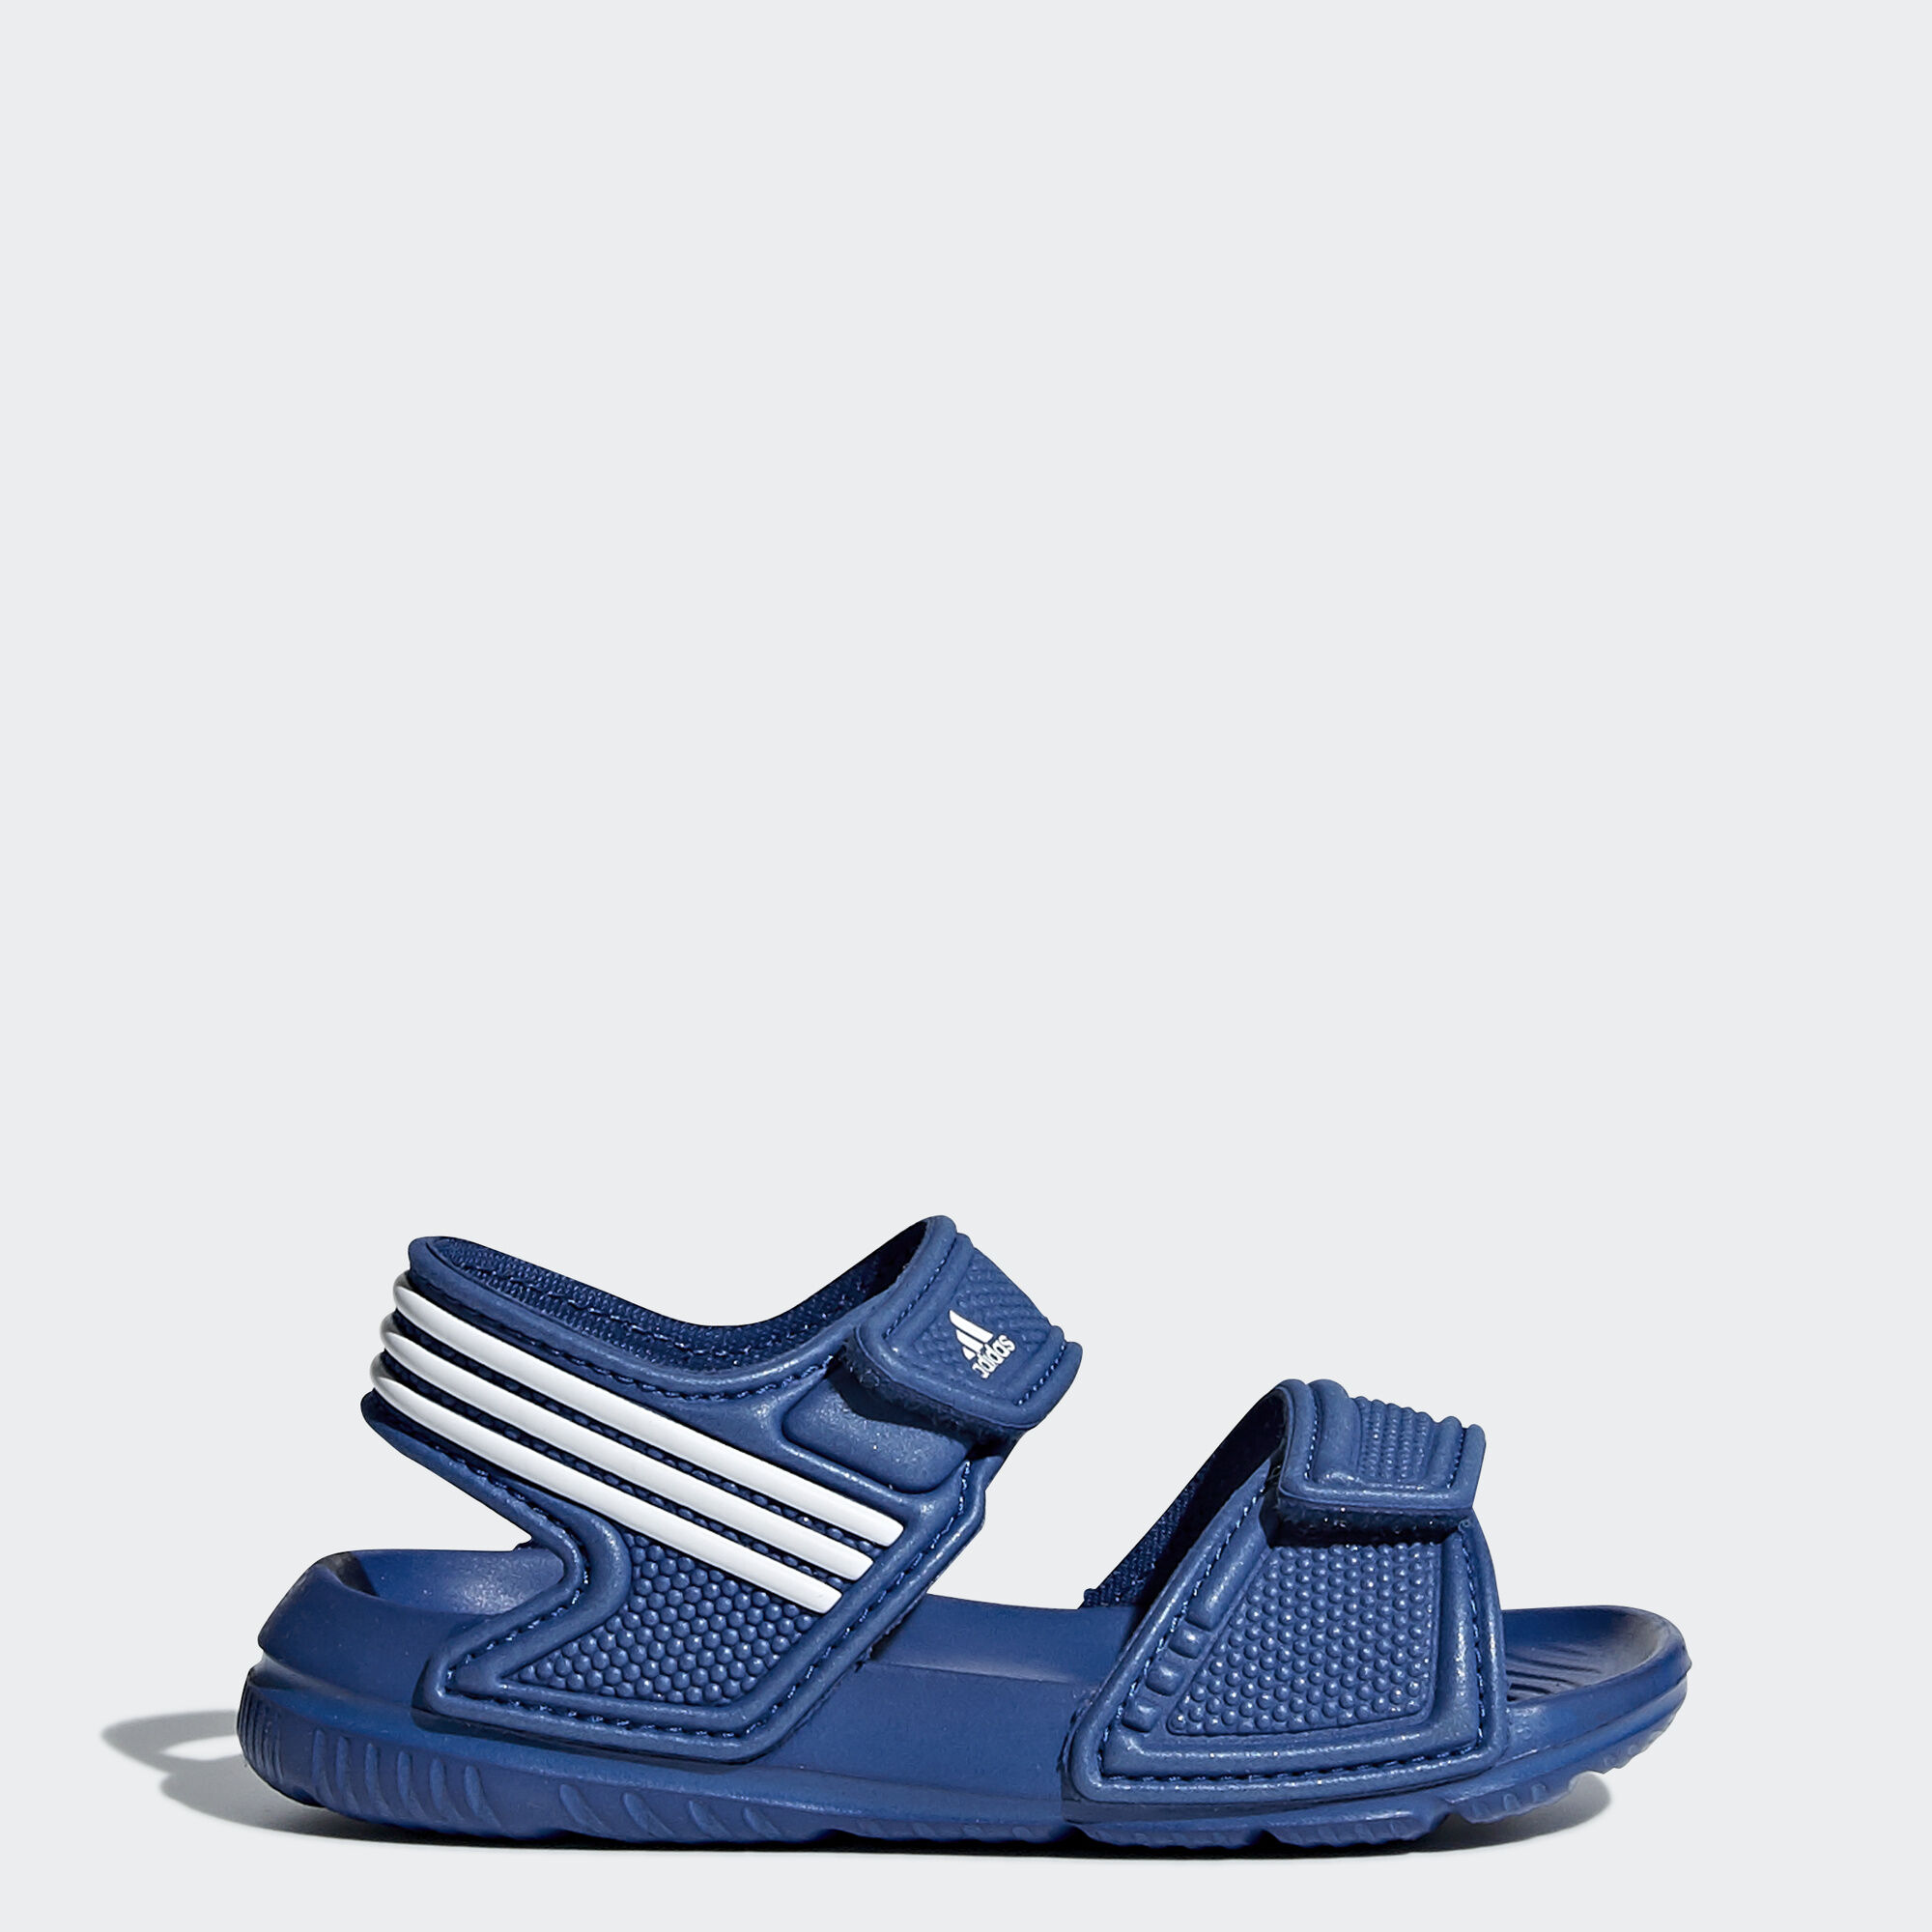 jdsqt Kids outlet. Up to 50% Off | adidas UK